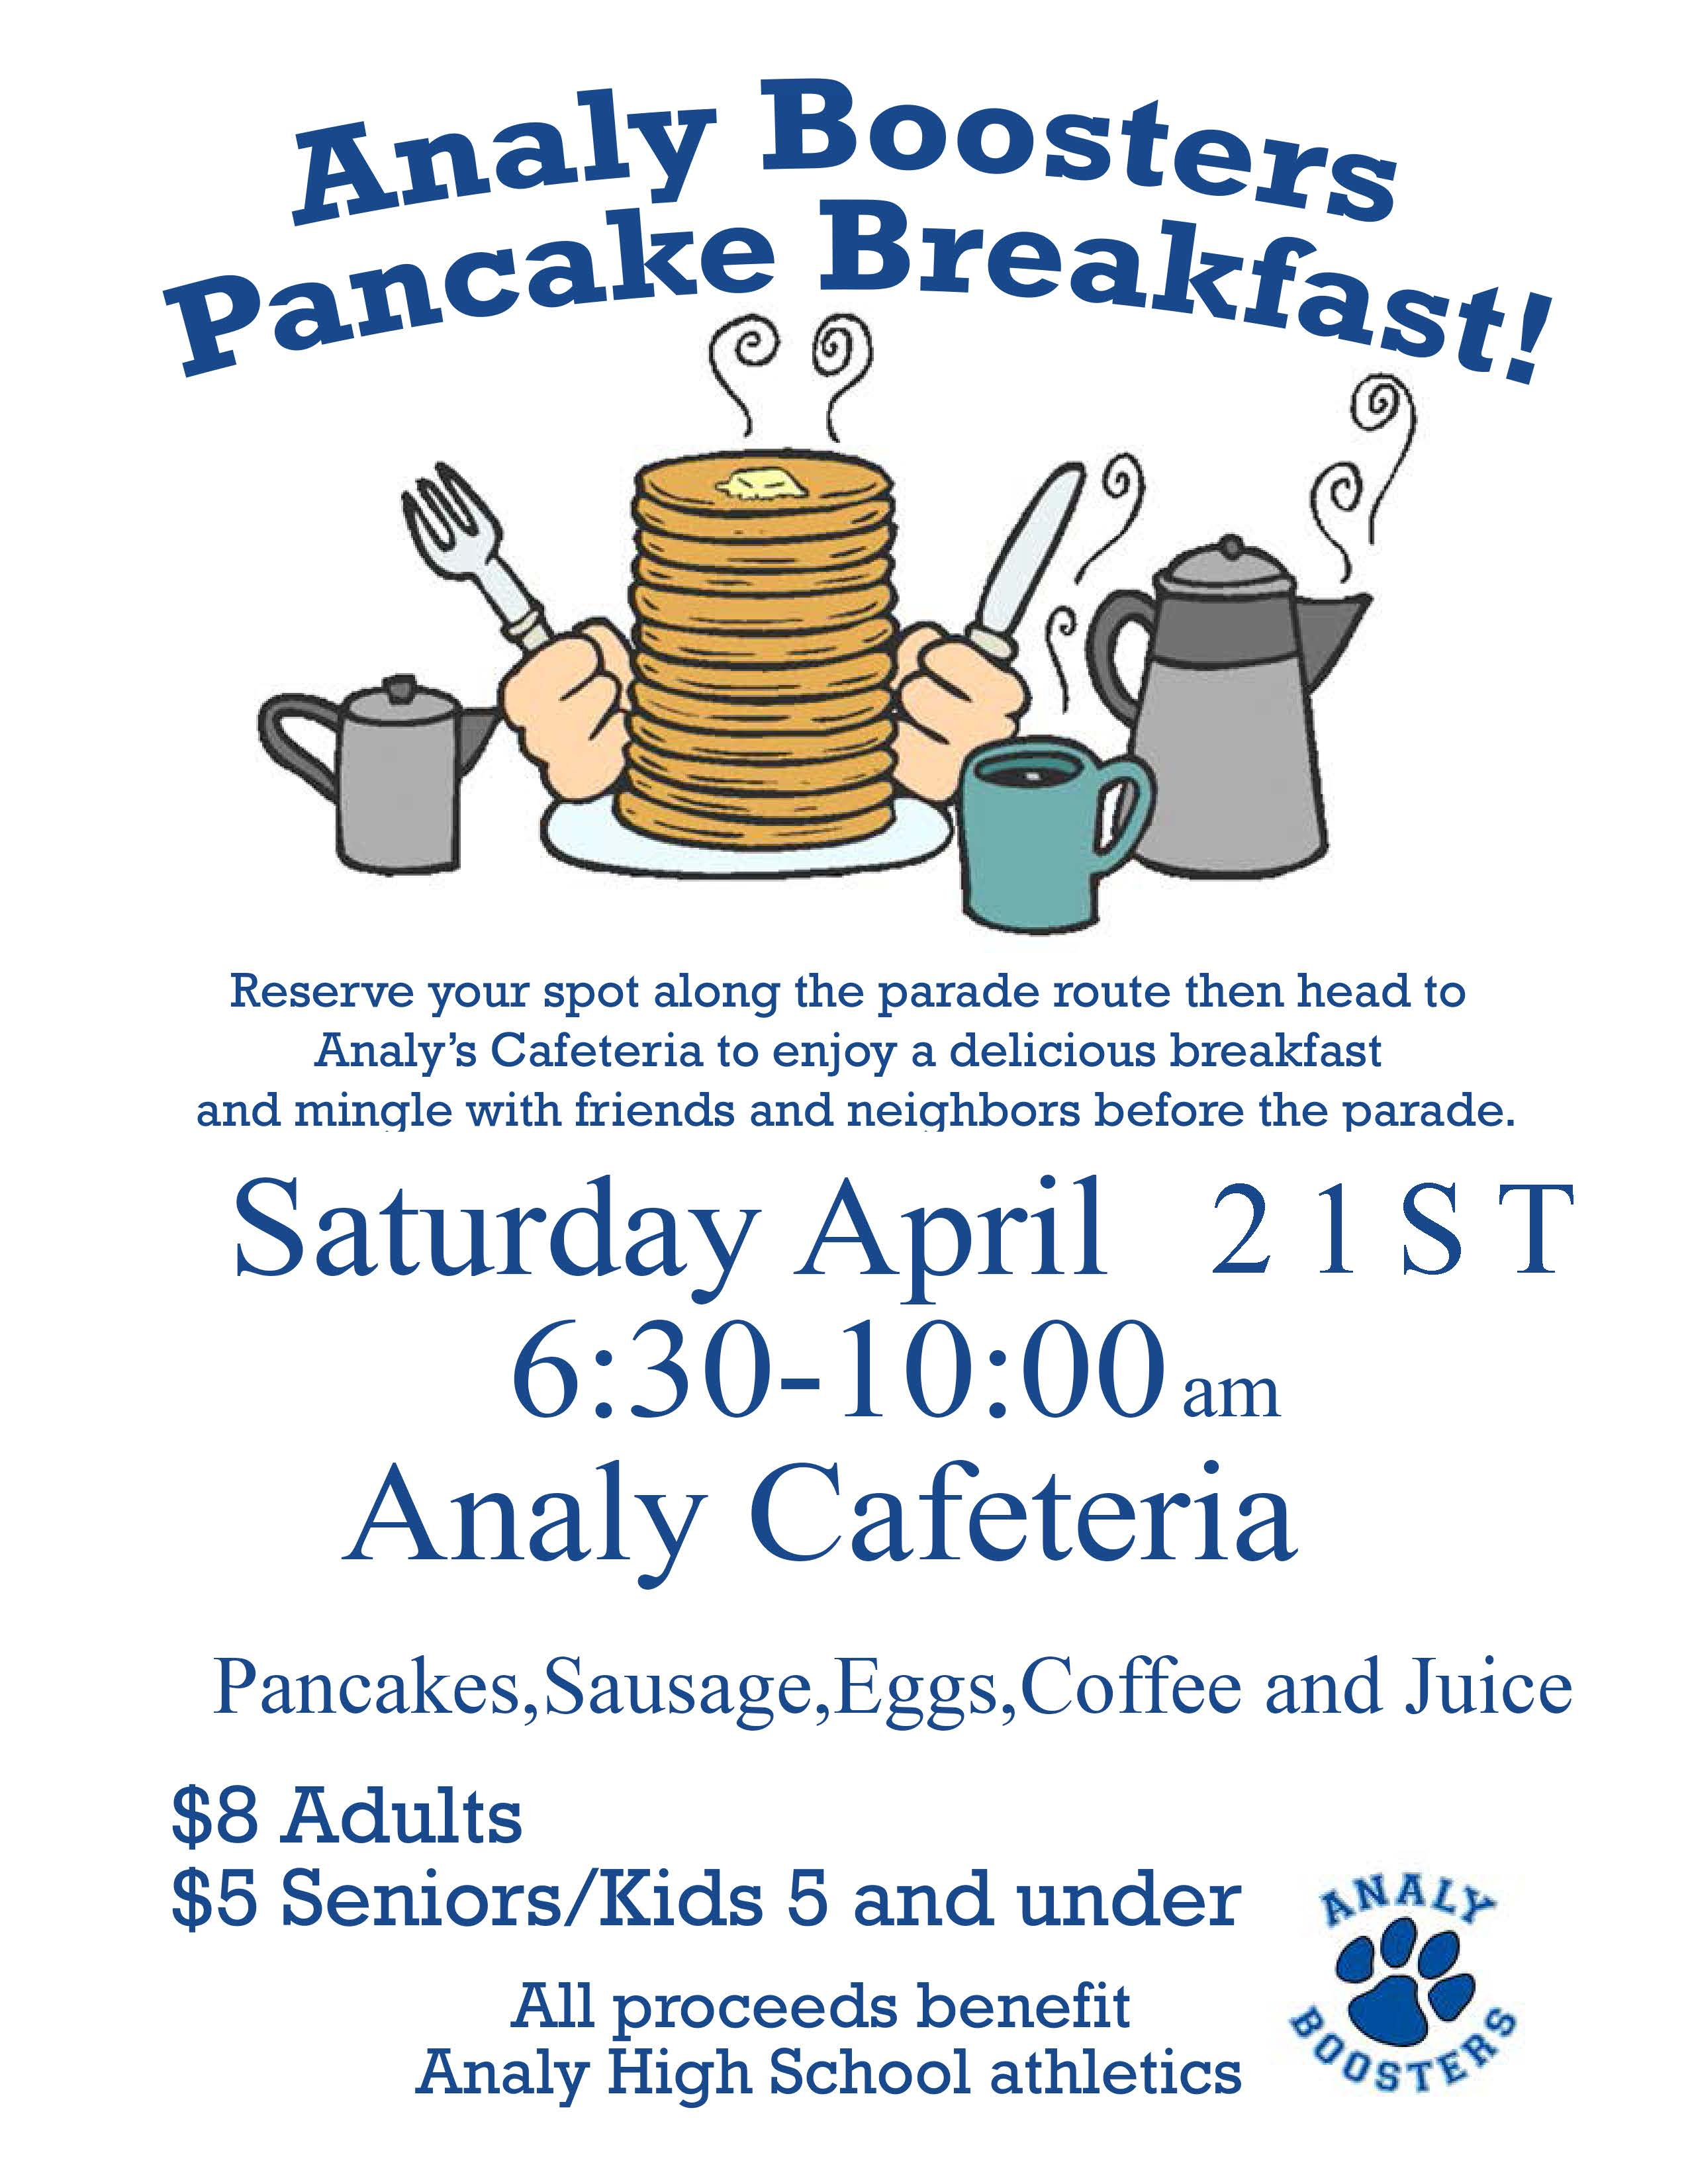 Analy Boosters Pancake Breakfast 2018